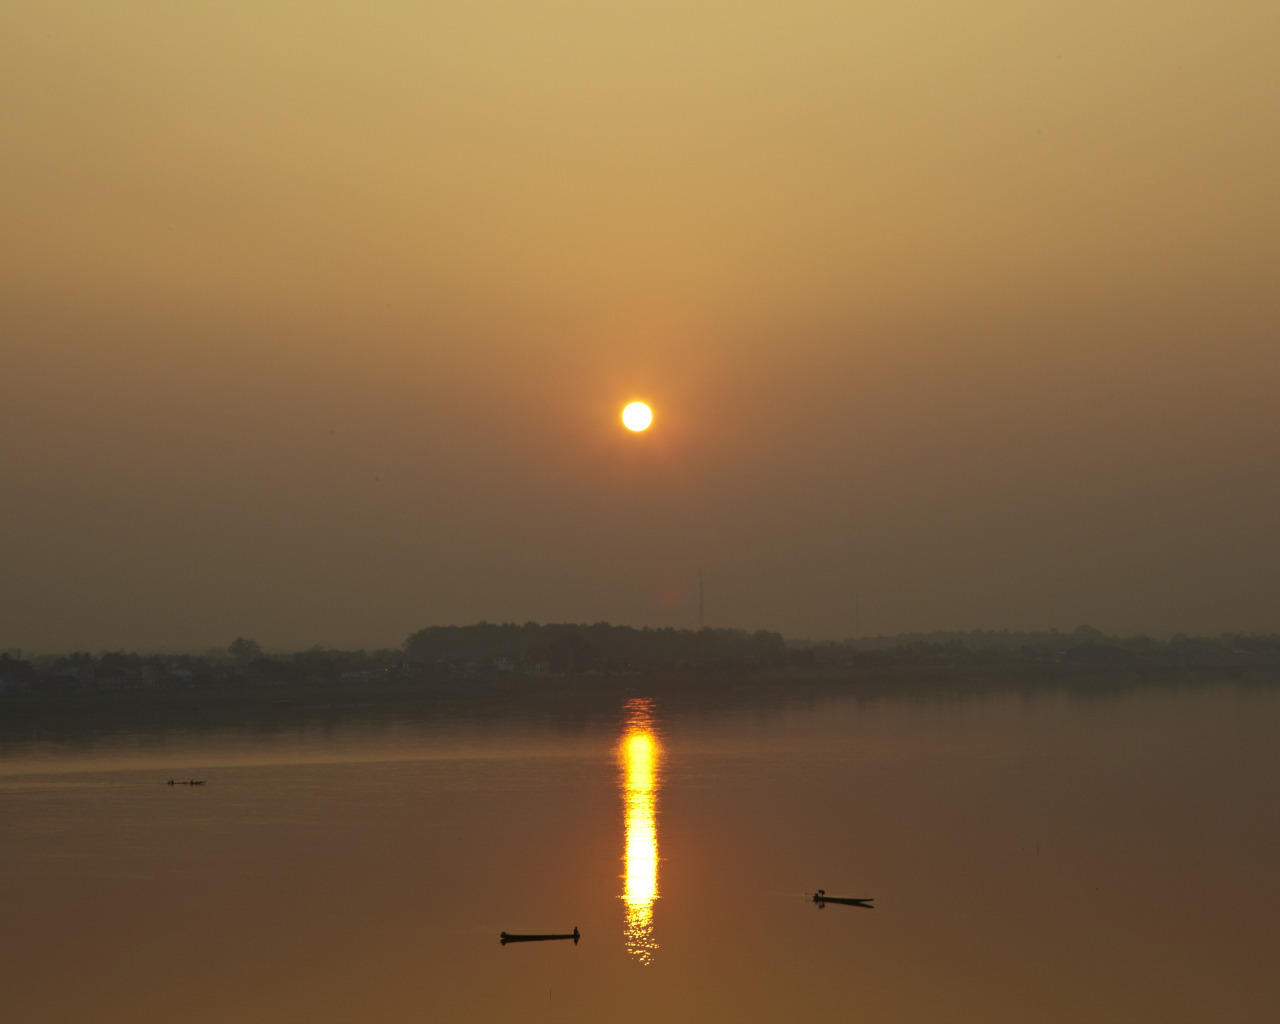 Mekong River from Laos at sunset.